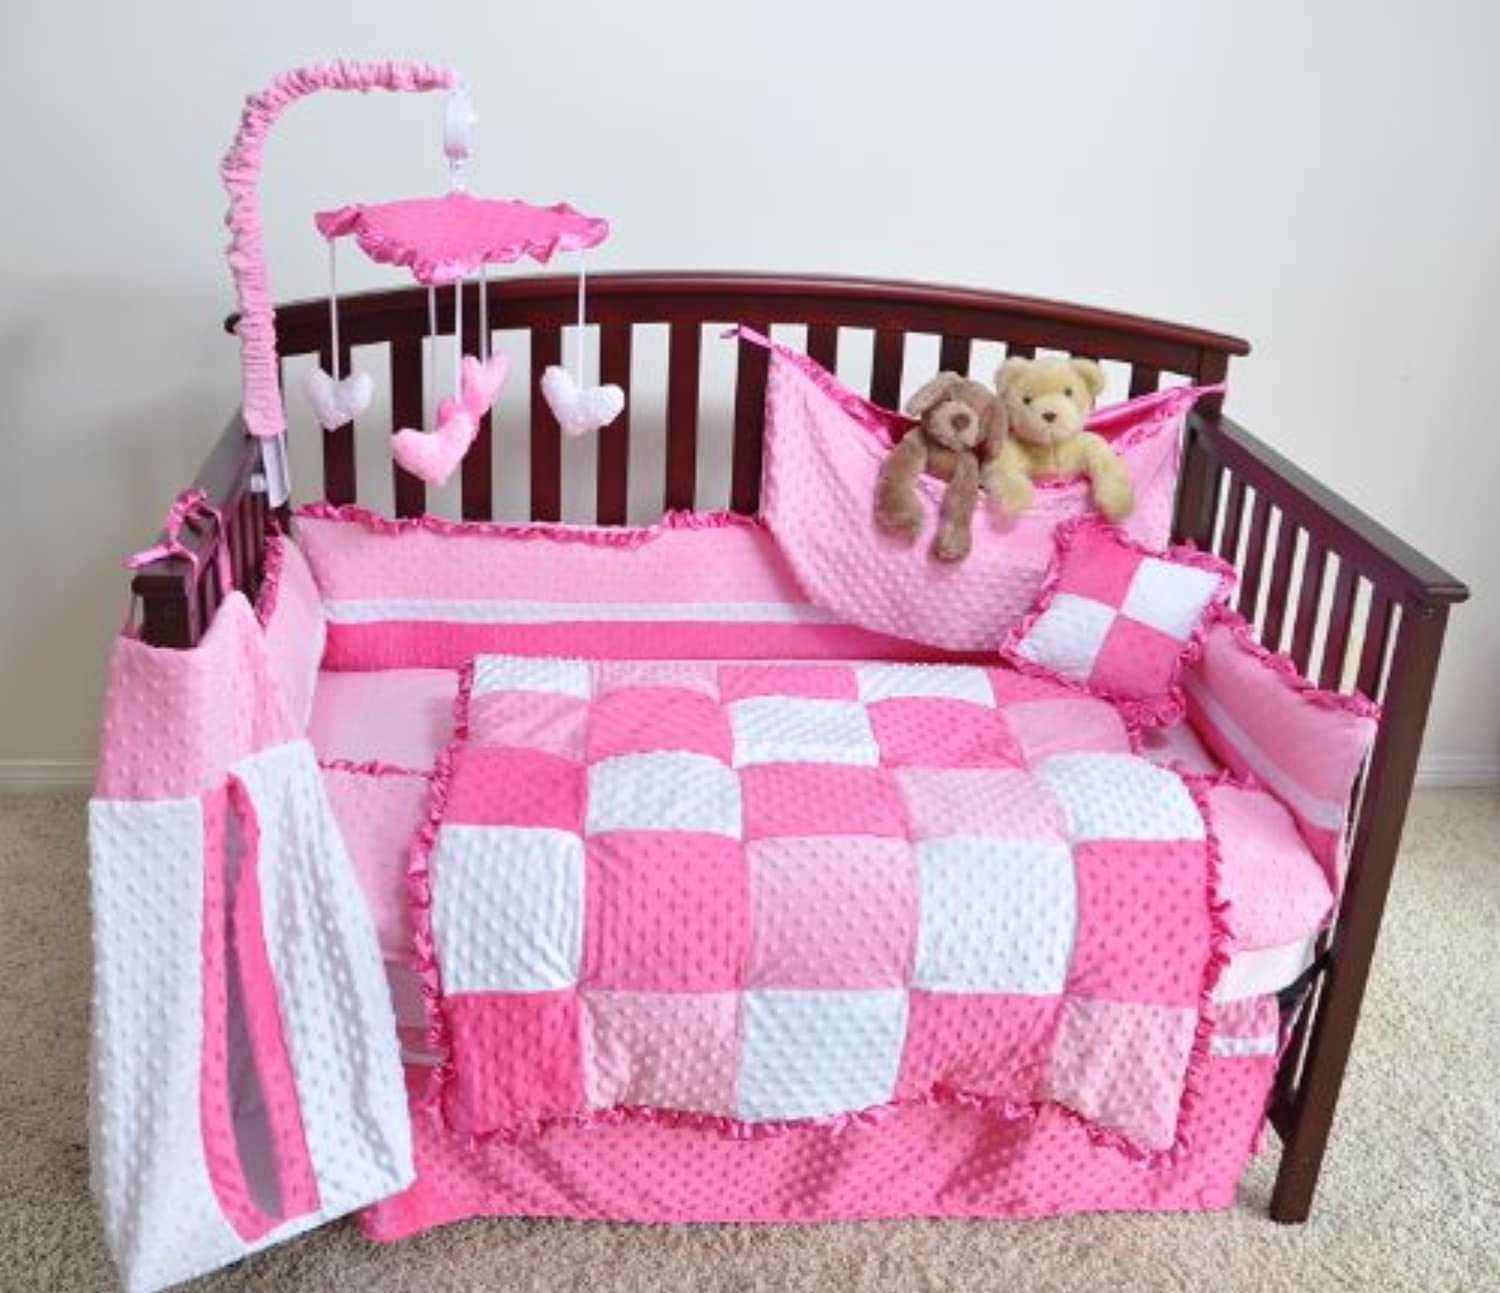 Neatbaby Designs 4 piece Crib Bedding Set, Pink by Neatbaby designs